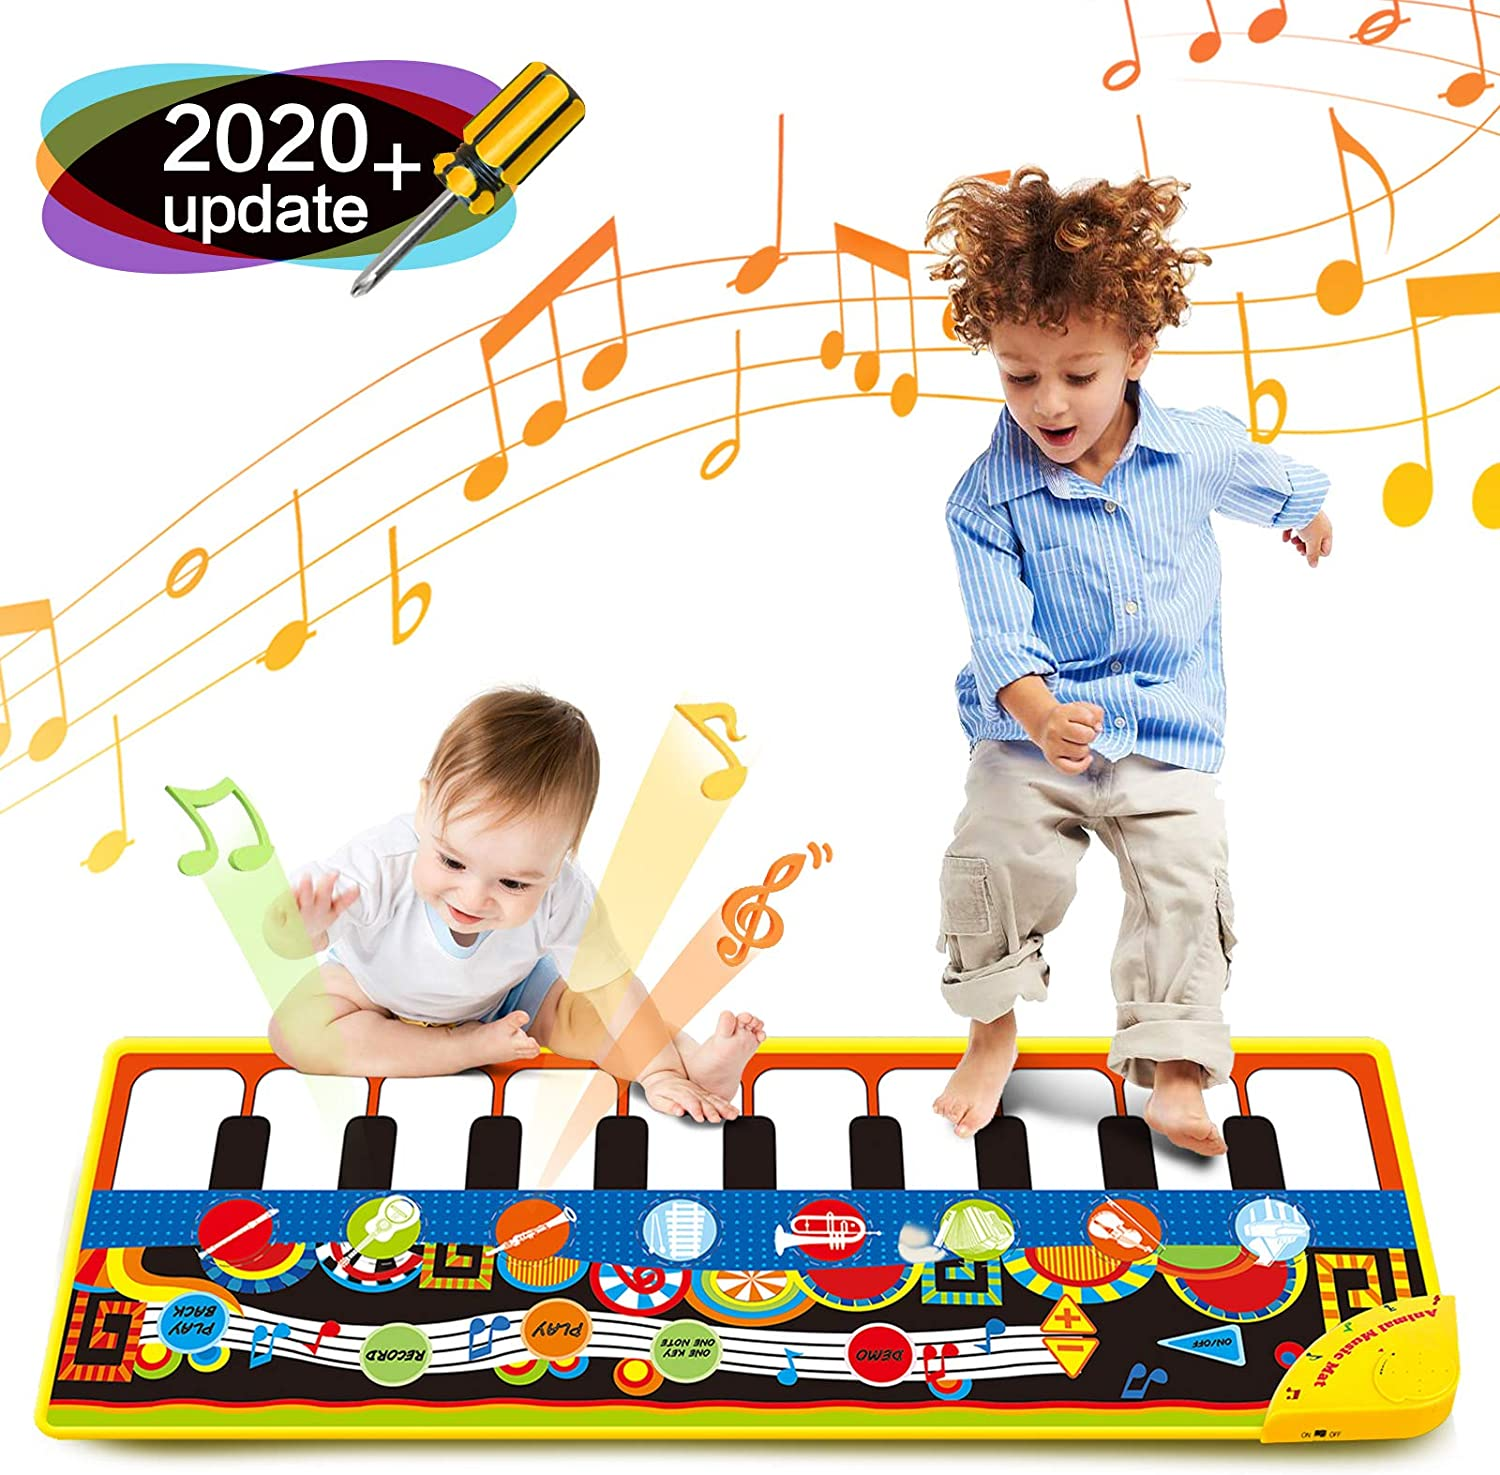 51.18 * 18.89 Inches Piano Playmat Mat Kids Piano Keyboard Music Playmat Toy Super Large Size Funny Dancing Mat for Babies Toddler Boys and Girls Gift